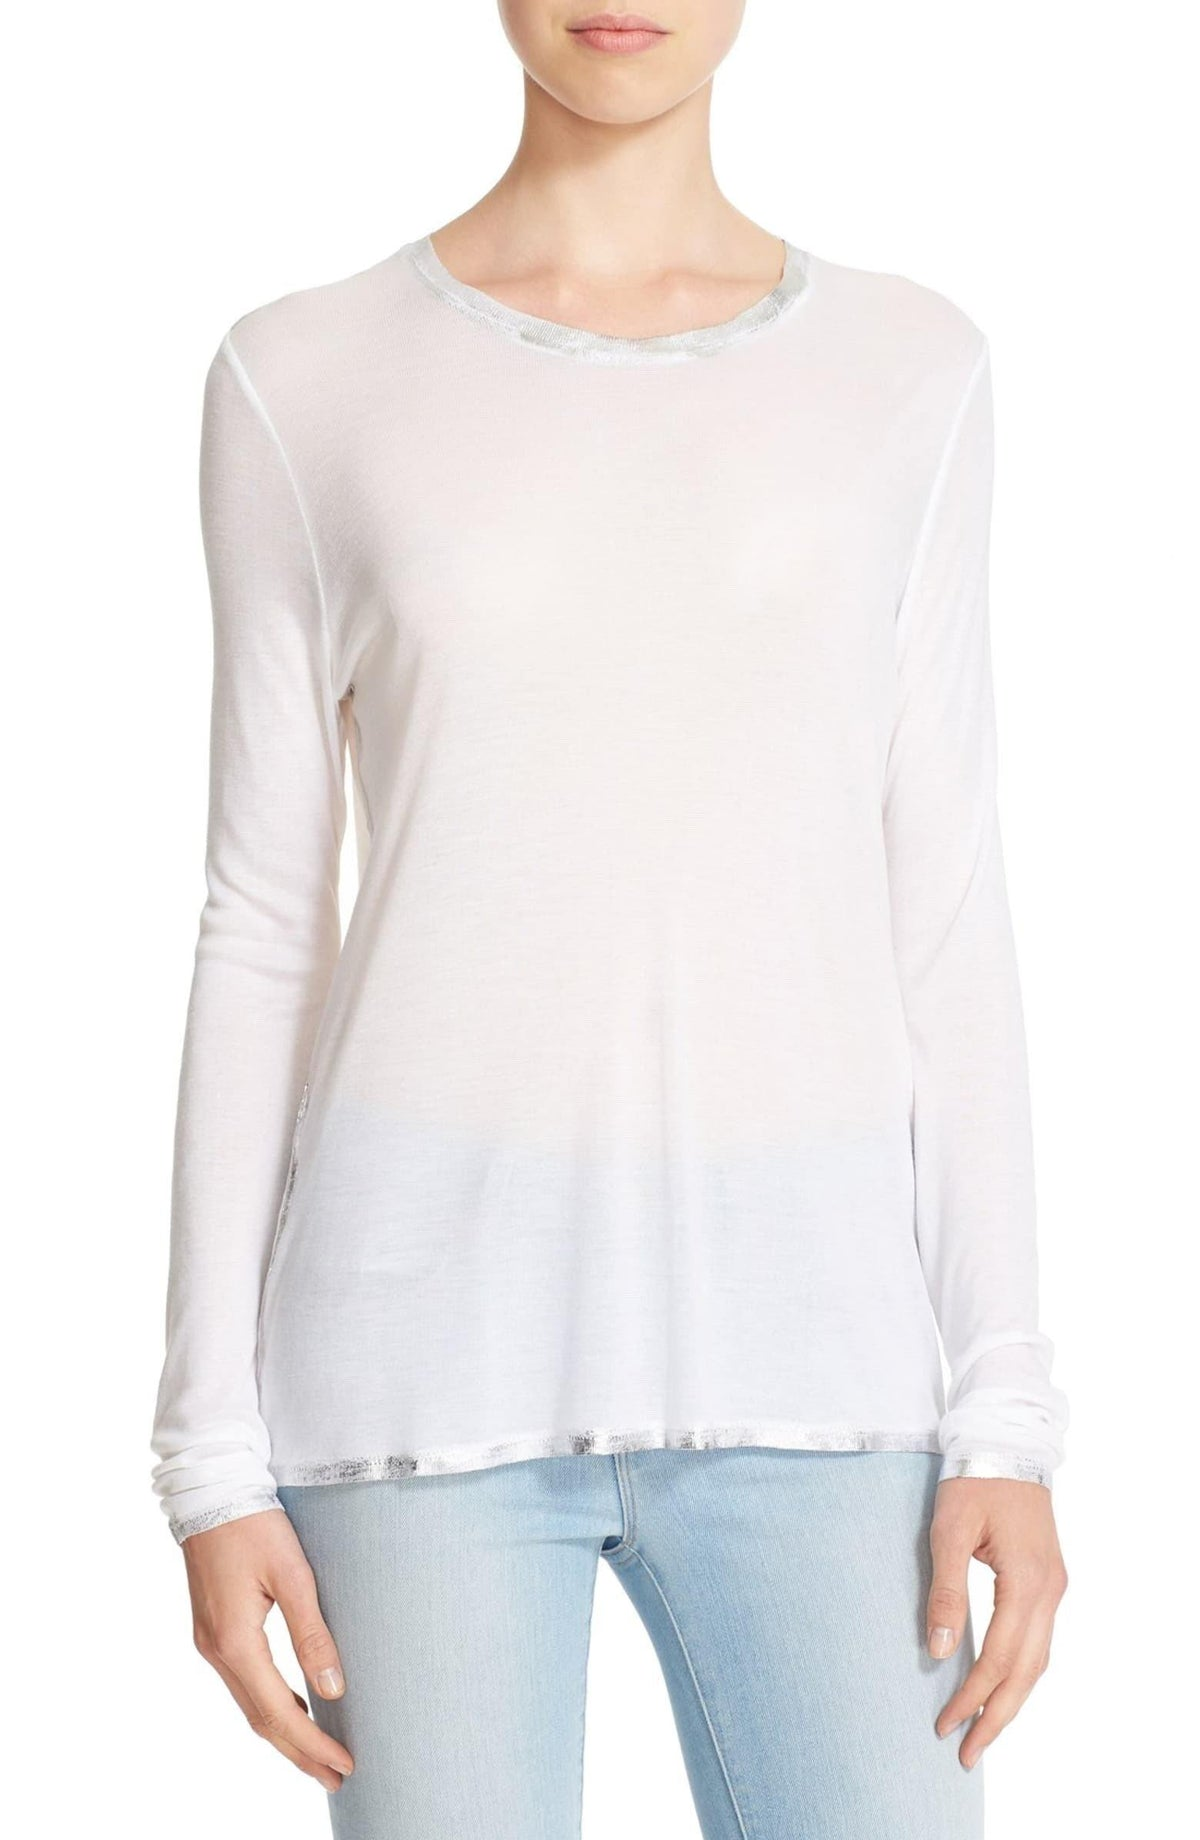 Willy Foil Long Sleeve - White - Wheat Boutique